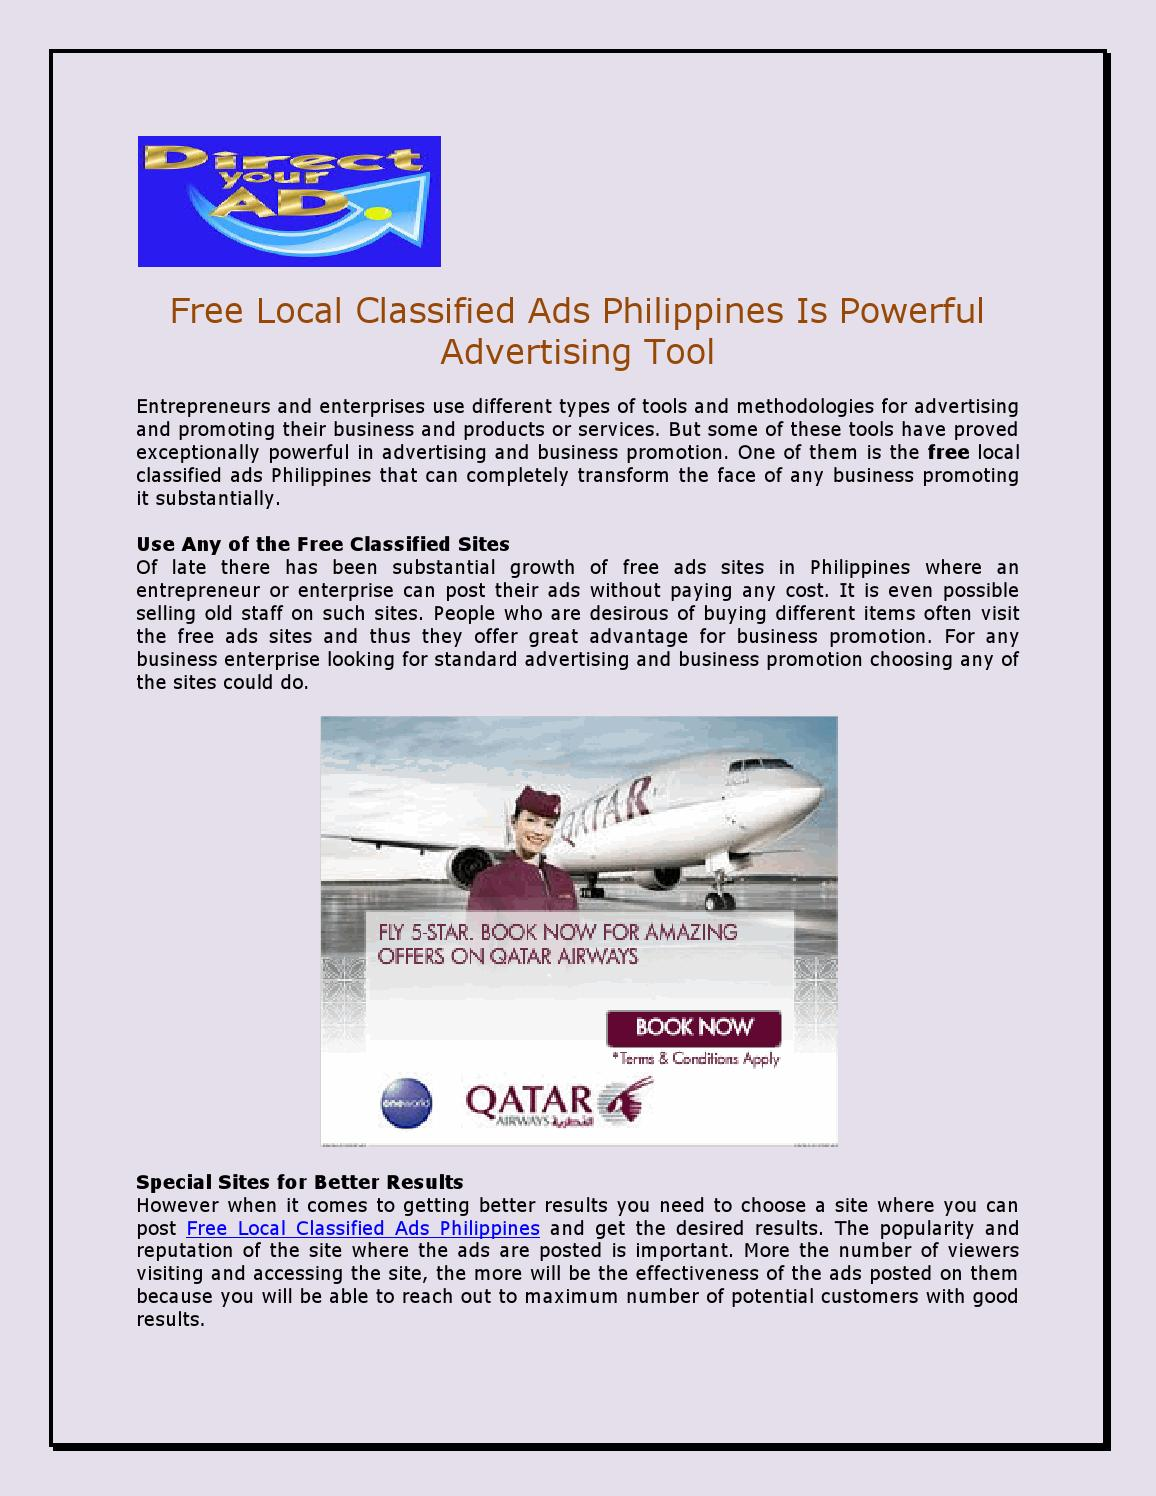 Free local classified ads philippines is powerful advertising tool